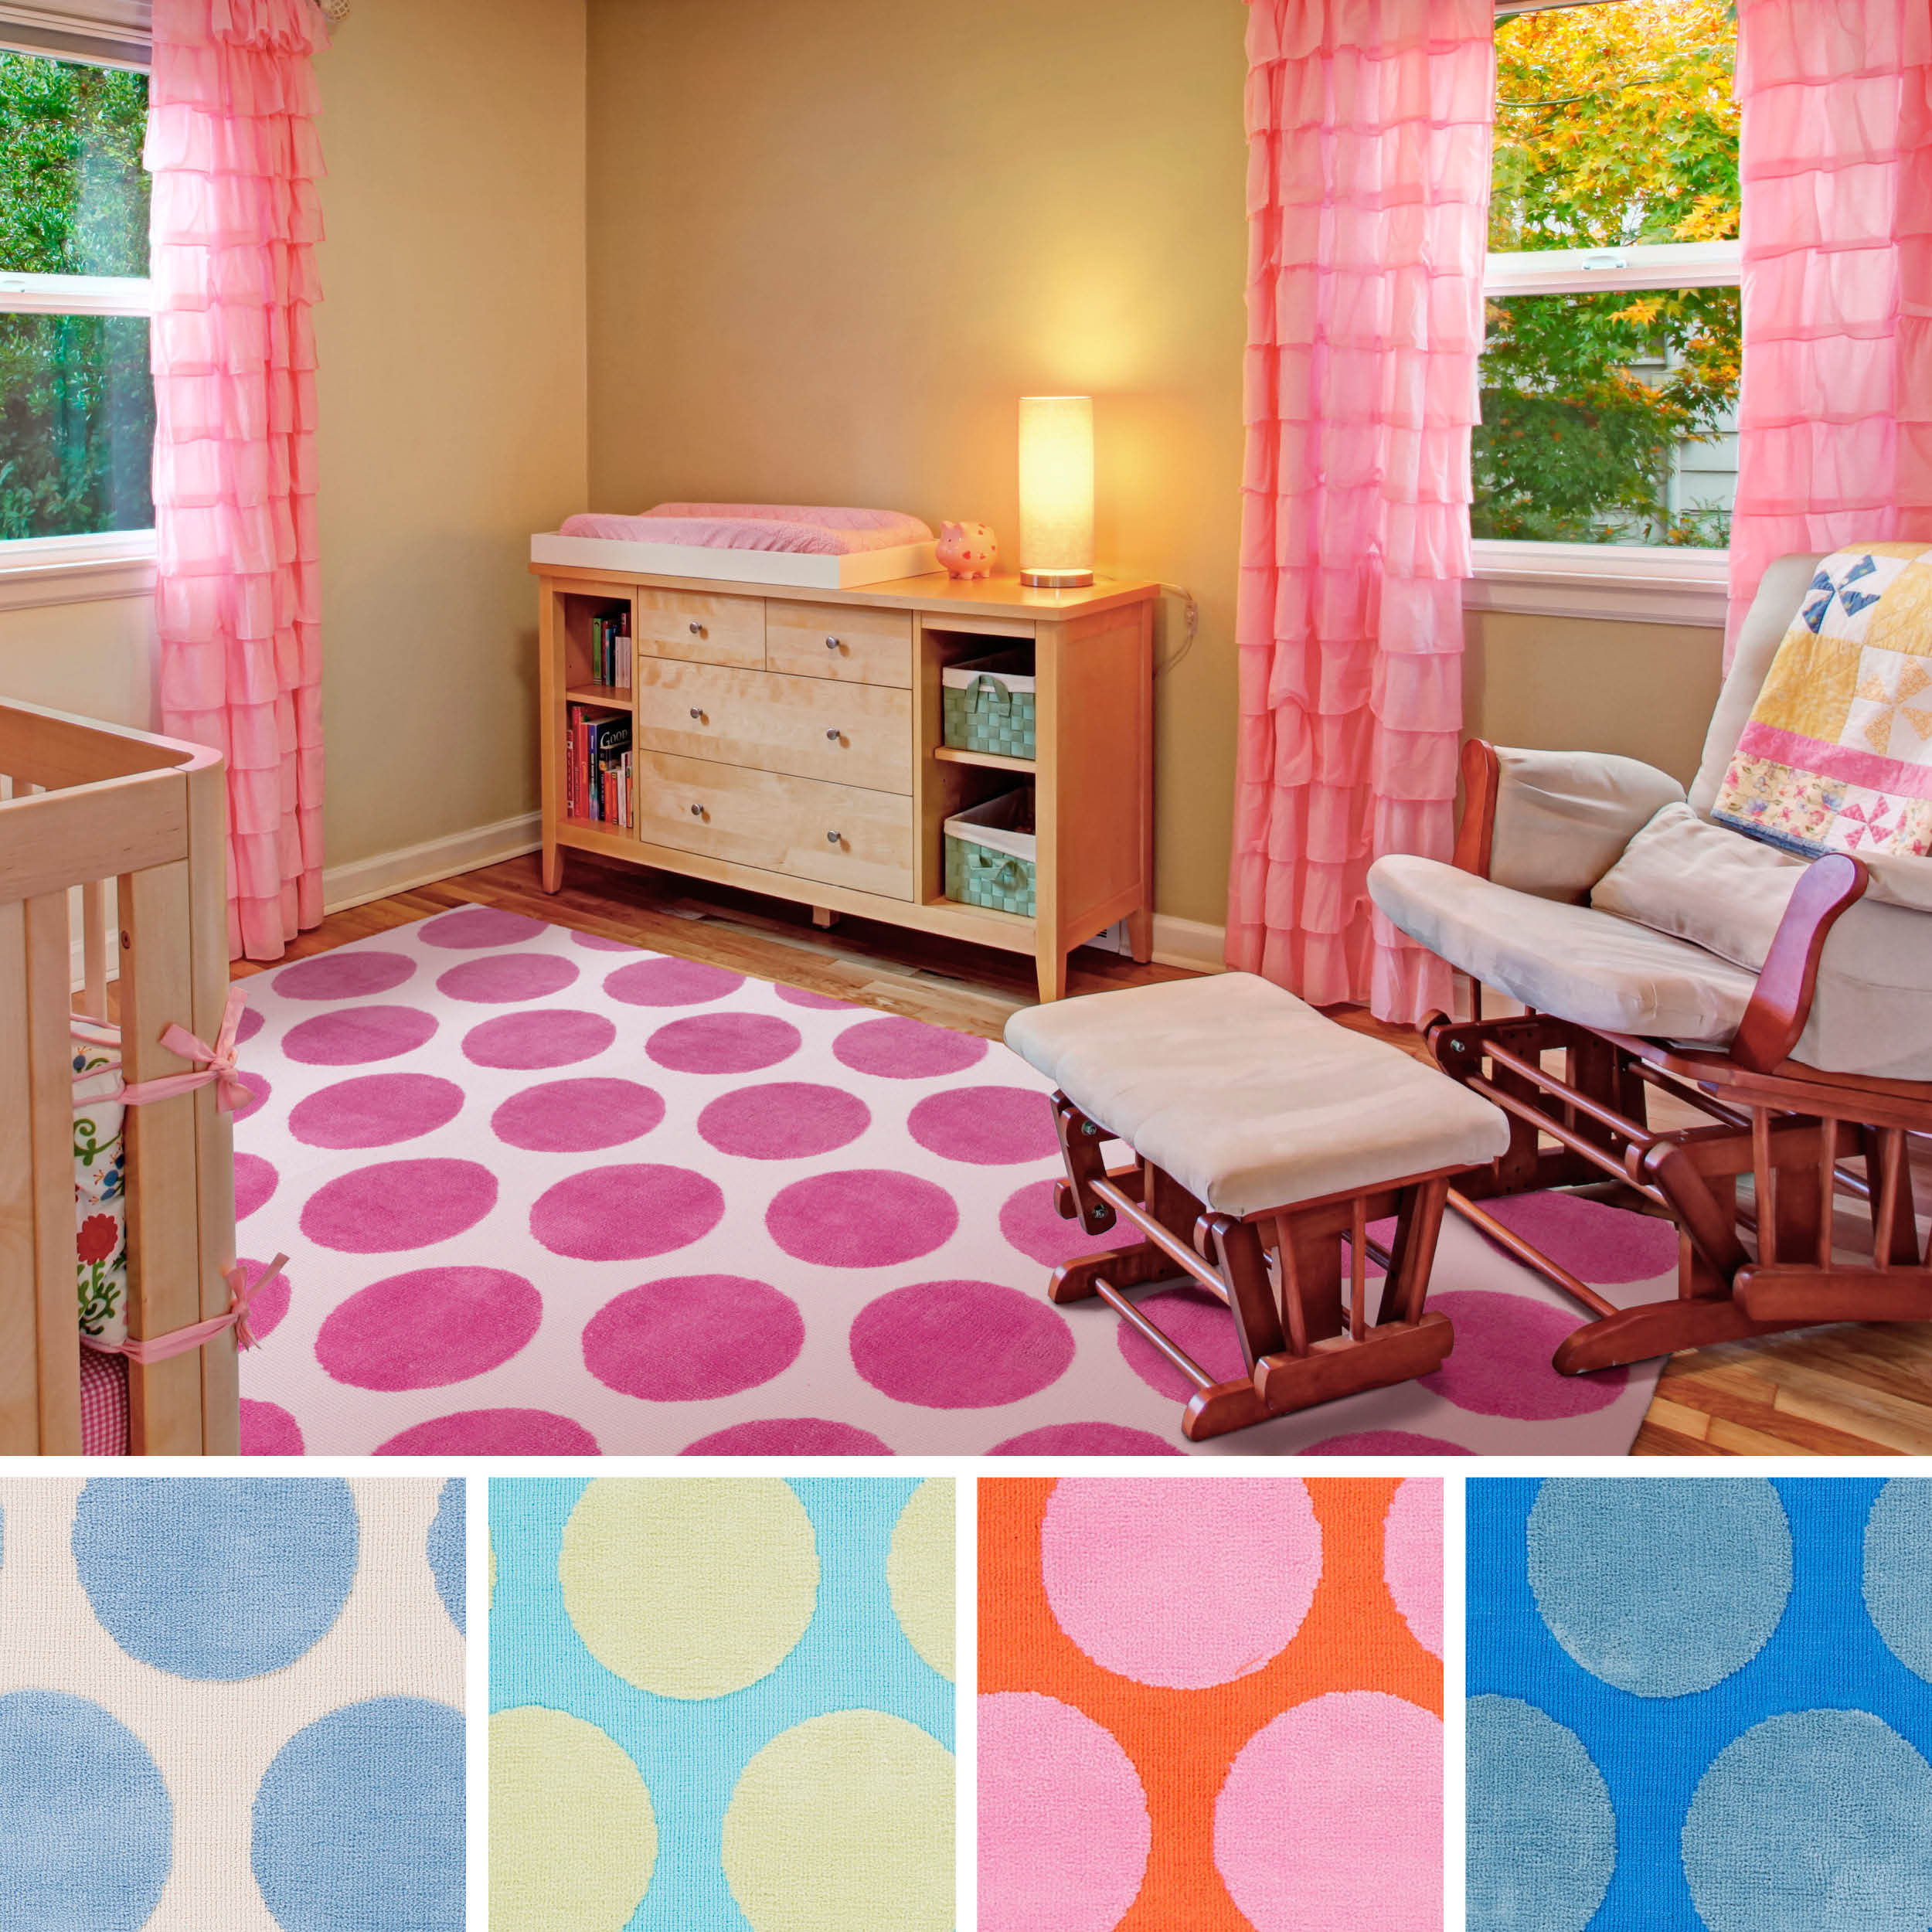 Overstock.com Meticulously Woven Whimsy Polka Dots Area Rug  (8' x 11') at Sears.com